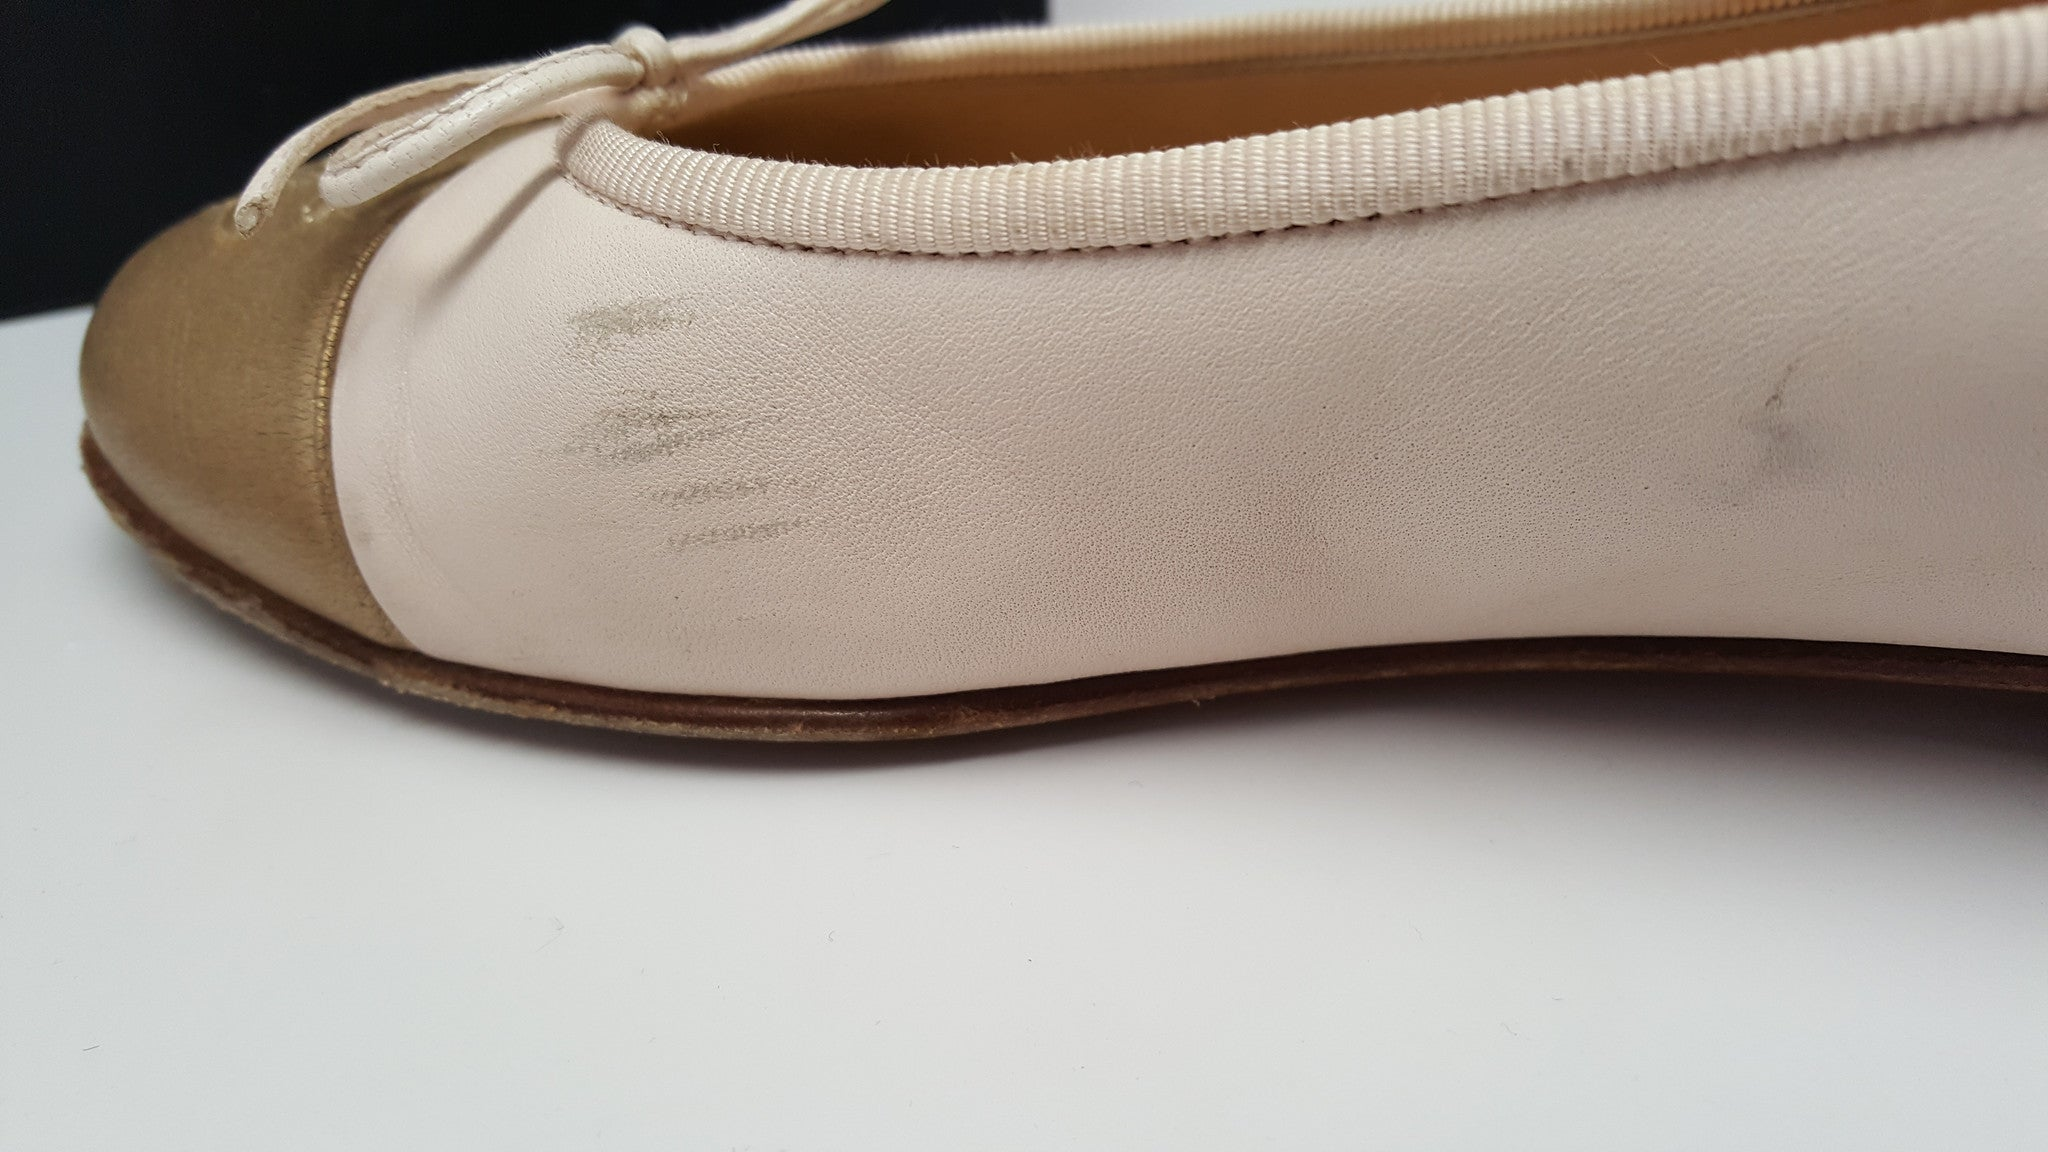 CHANEL BALLERINES FLATS - ROSE CLAIR - SIZE 37